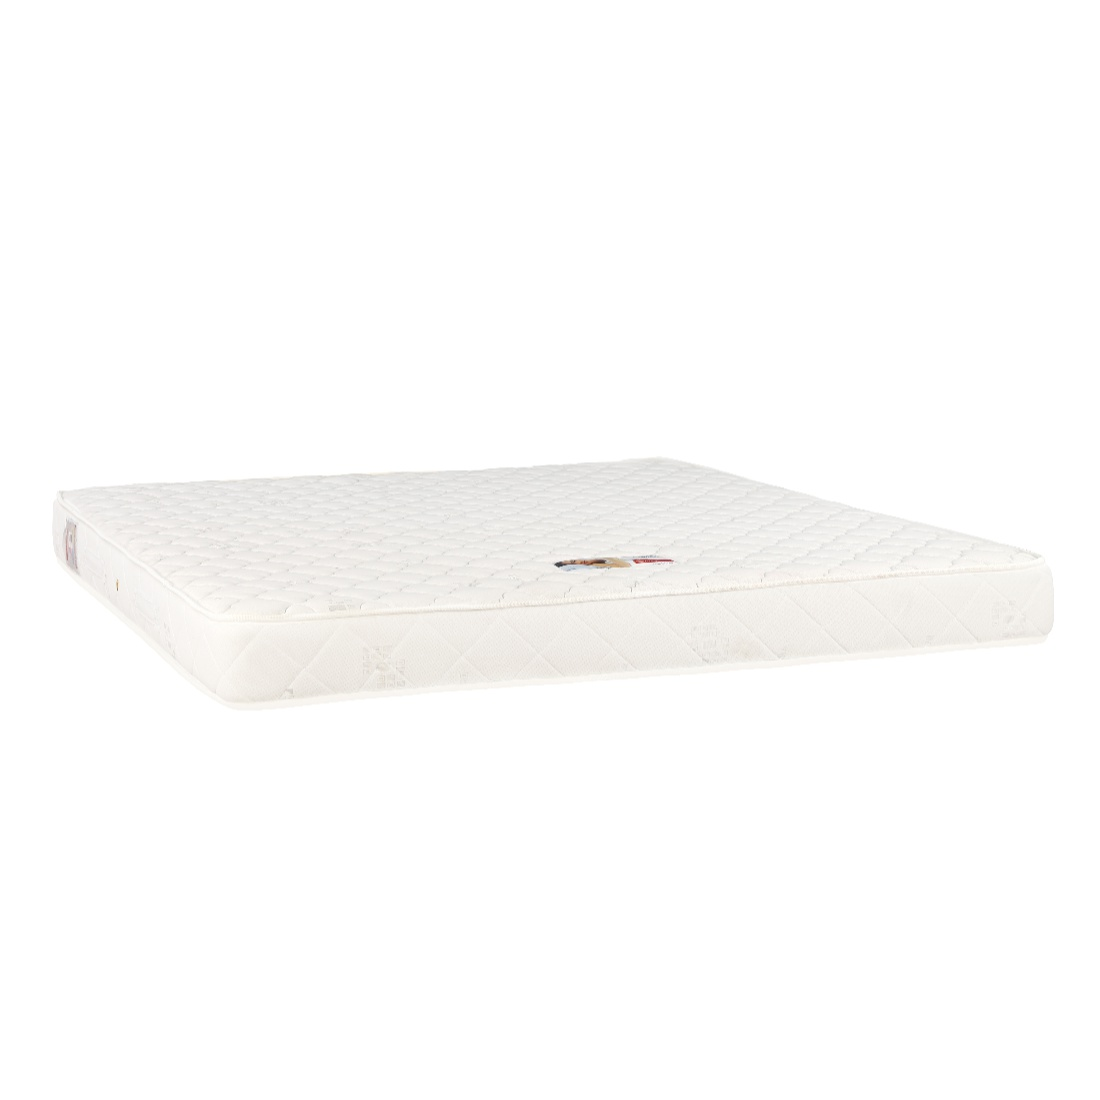 Comfort Pocket Spring King Bed Mattress (78*72*8) in Cream Colour by HomeTown